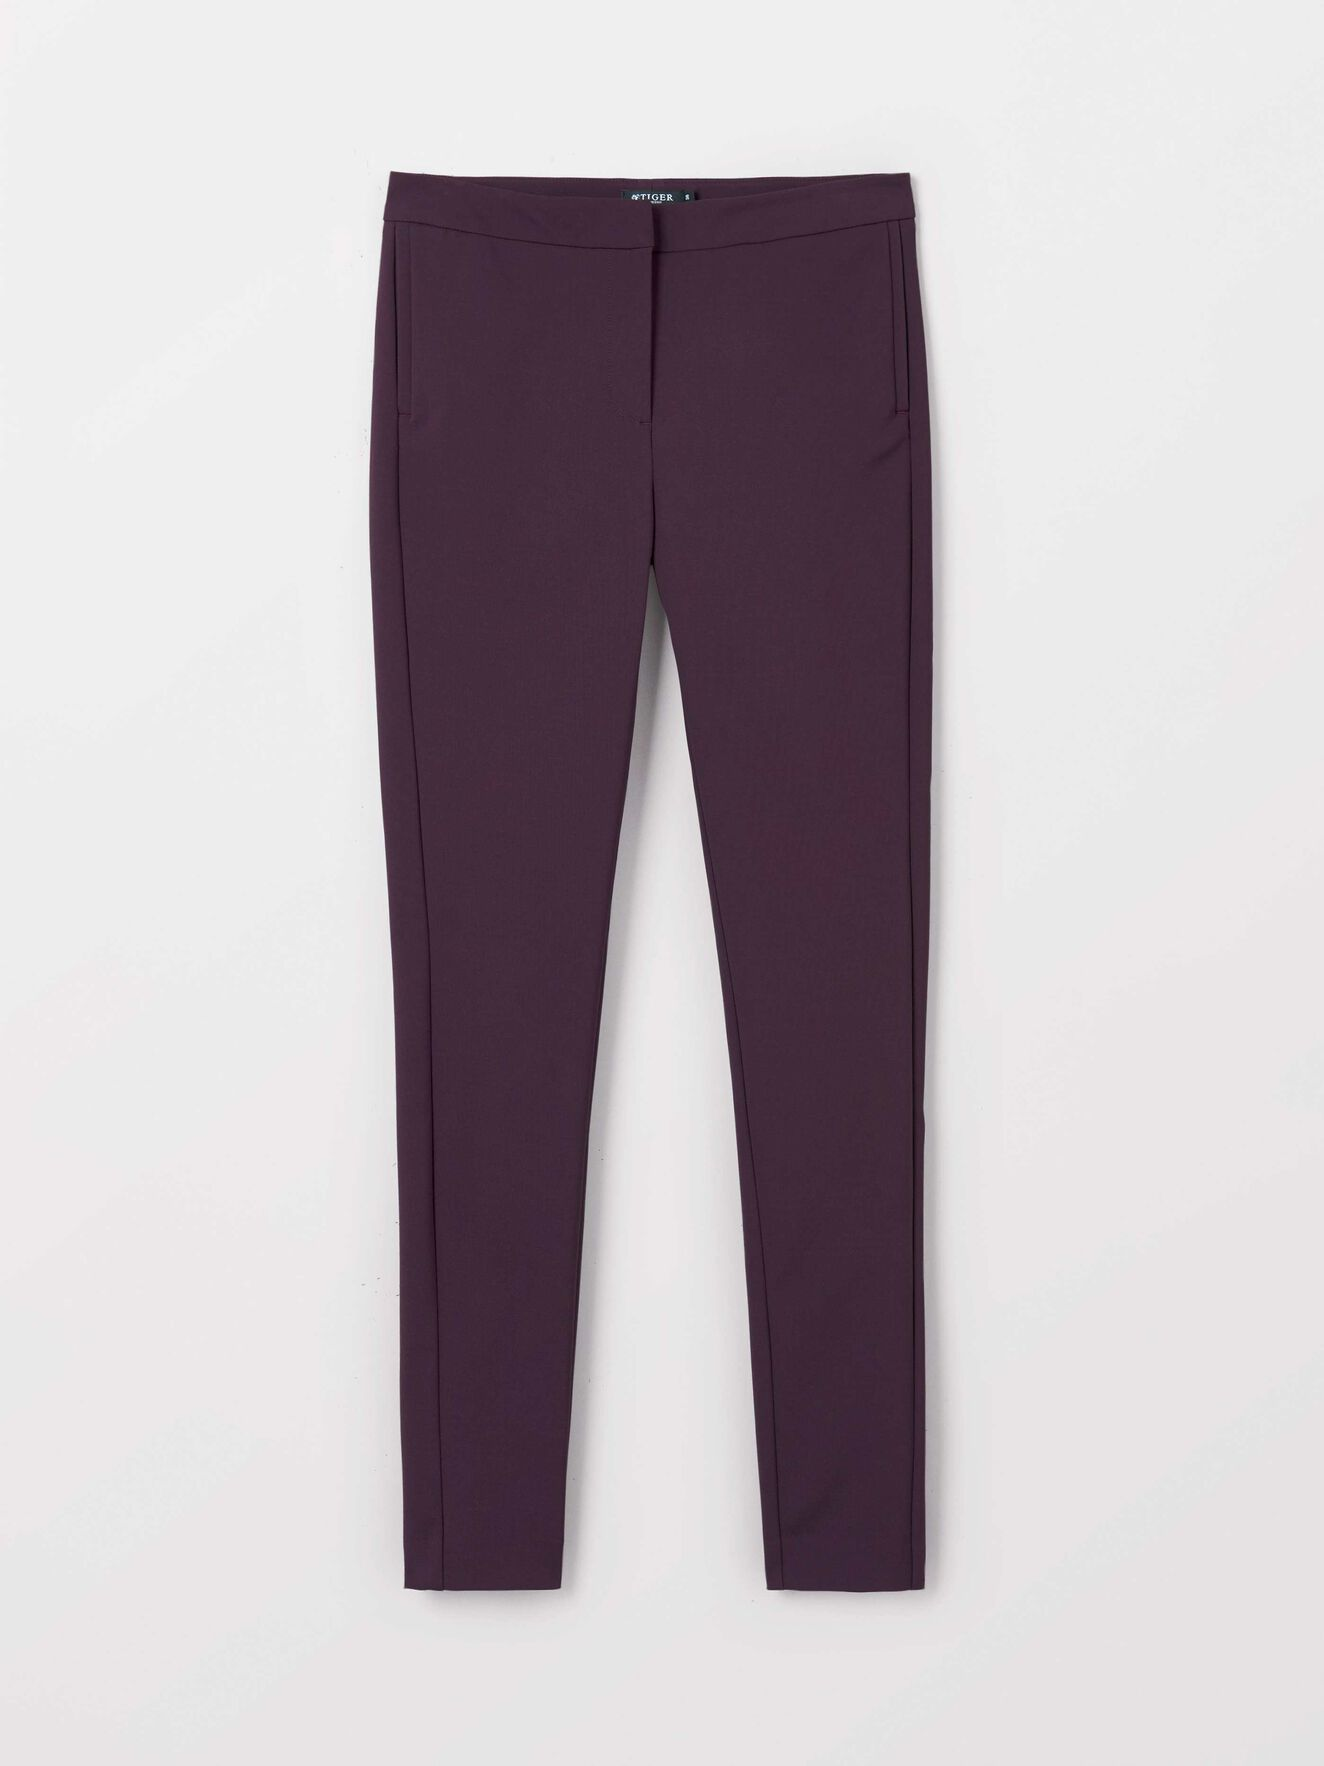 Cristin S Trousers in Juicy Plum from Tiger of Sweden